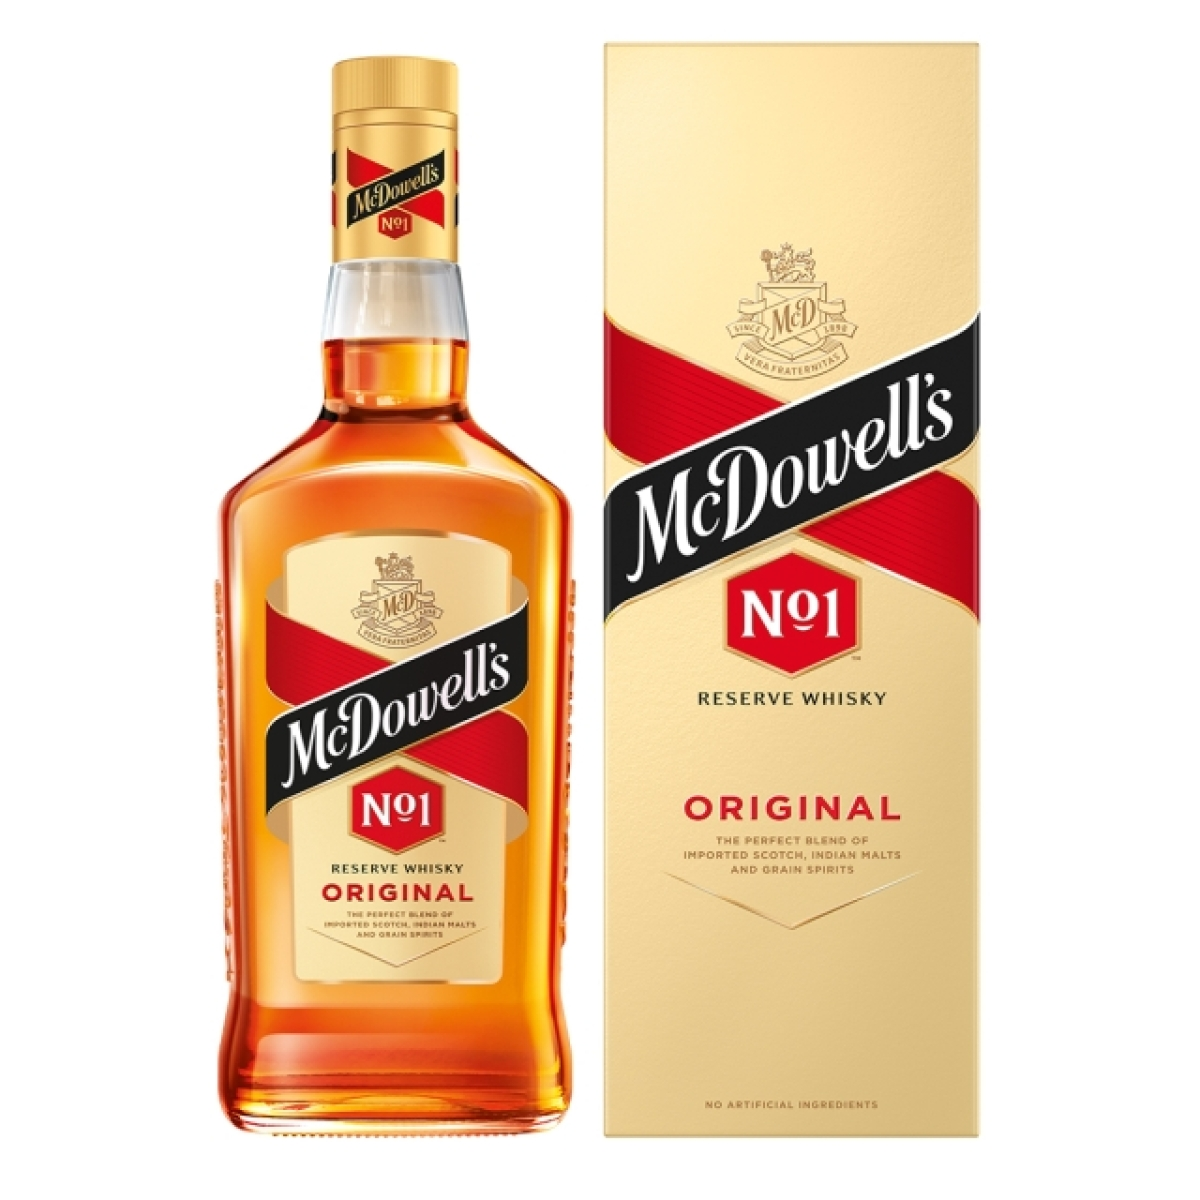 McDowell's new packaging